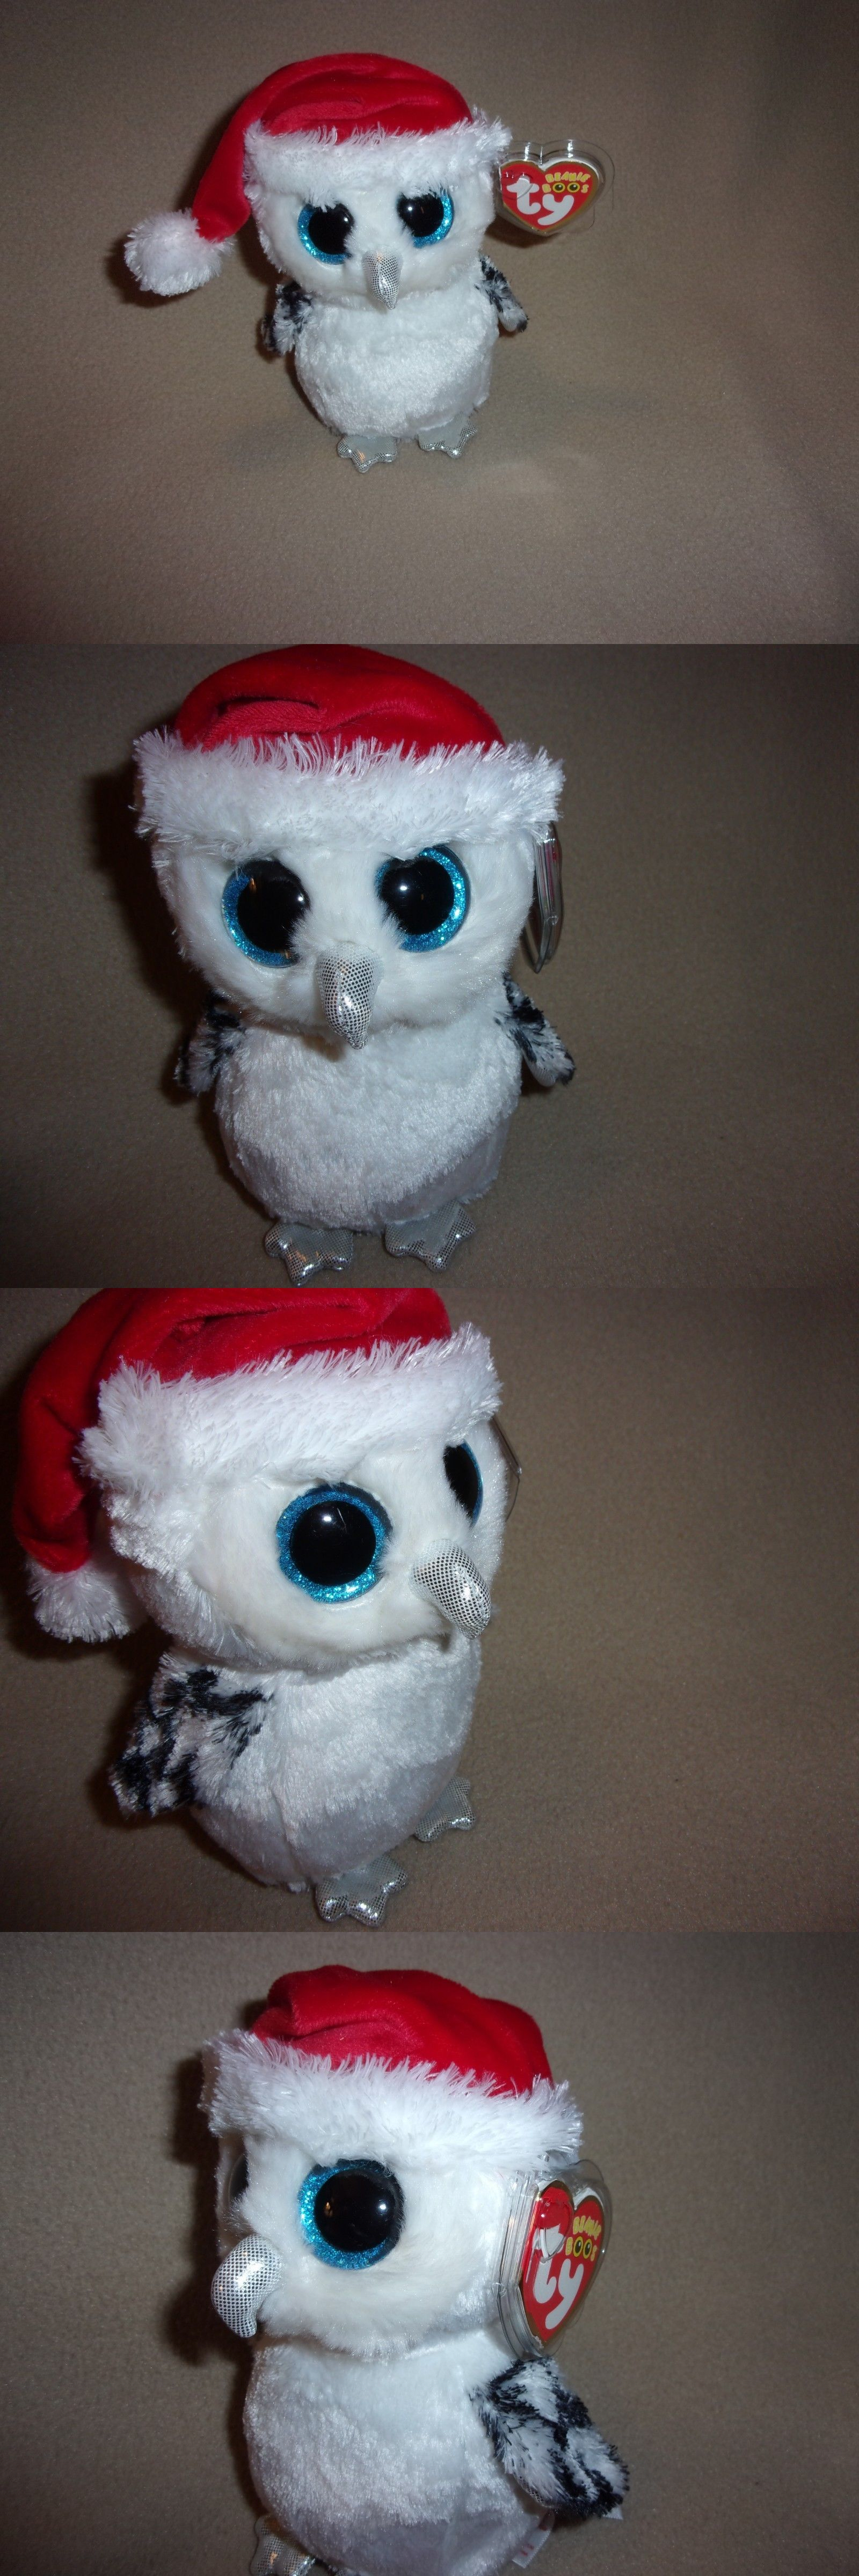 Other Ty Beanbag Plush 1037  Ty New Tinsel The Snowy Owl Beanie Boo ... 1b845f1427c2